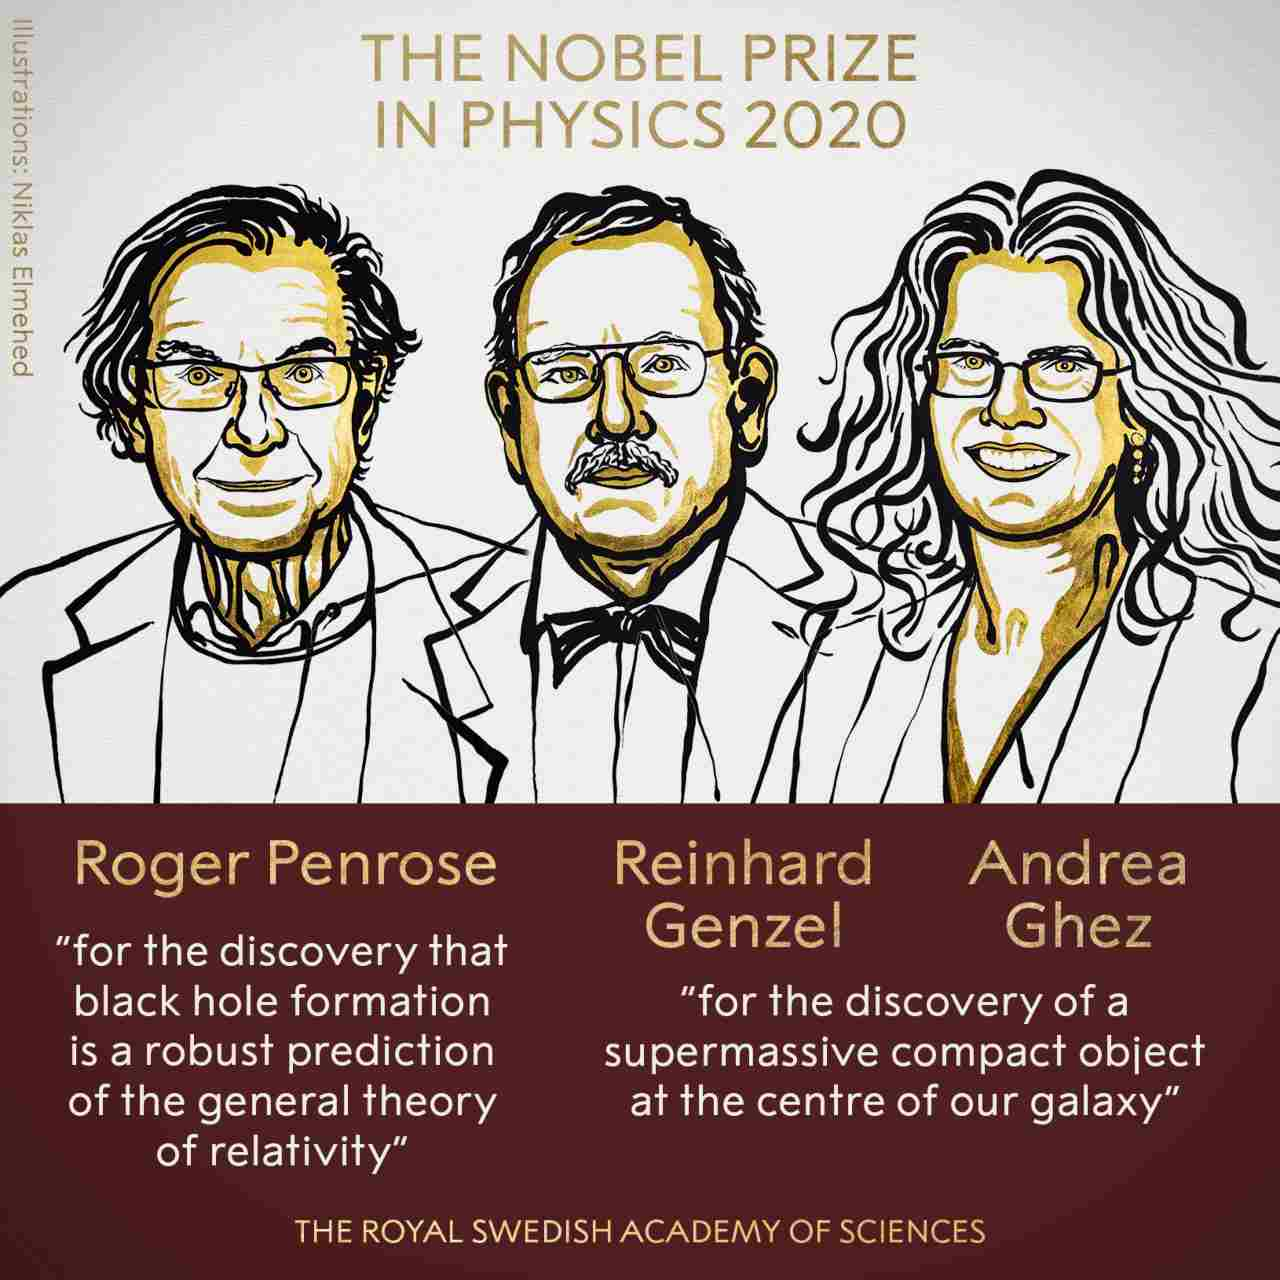 Nobel Prize 2020 in Physics awarded to Penrose, Genzel and Ghez for findings in cosmology, black holes